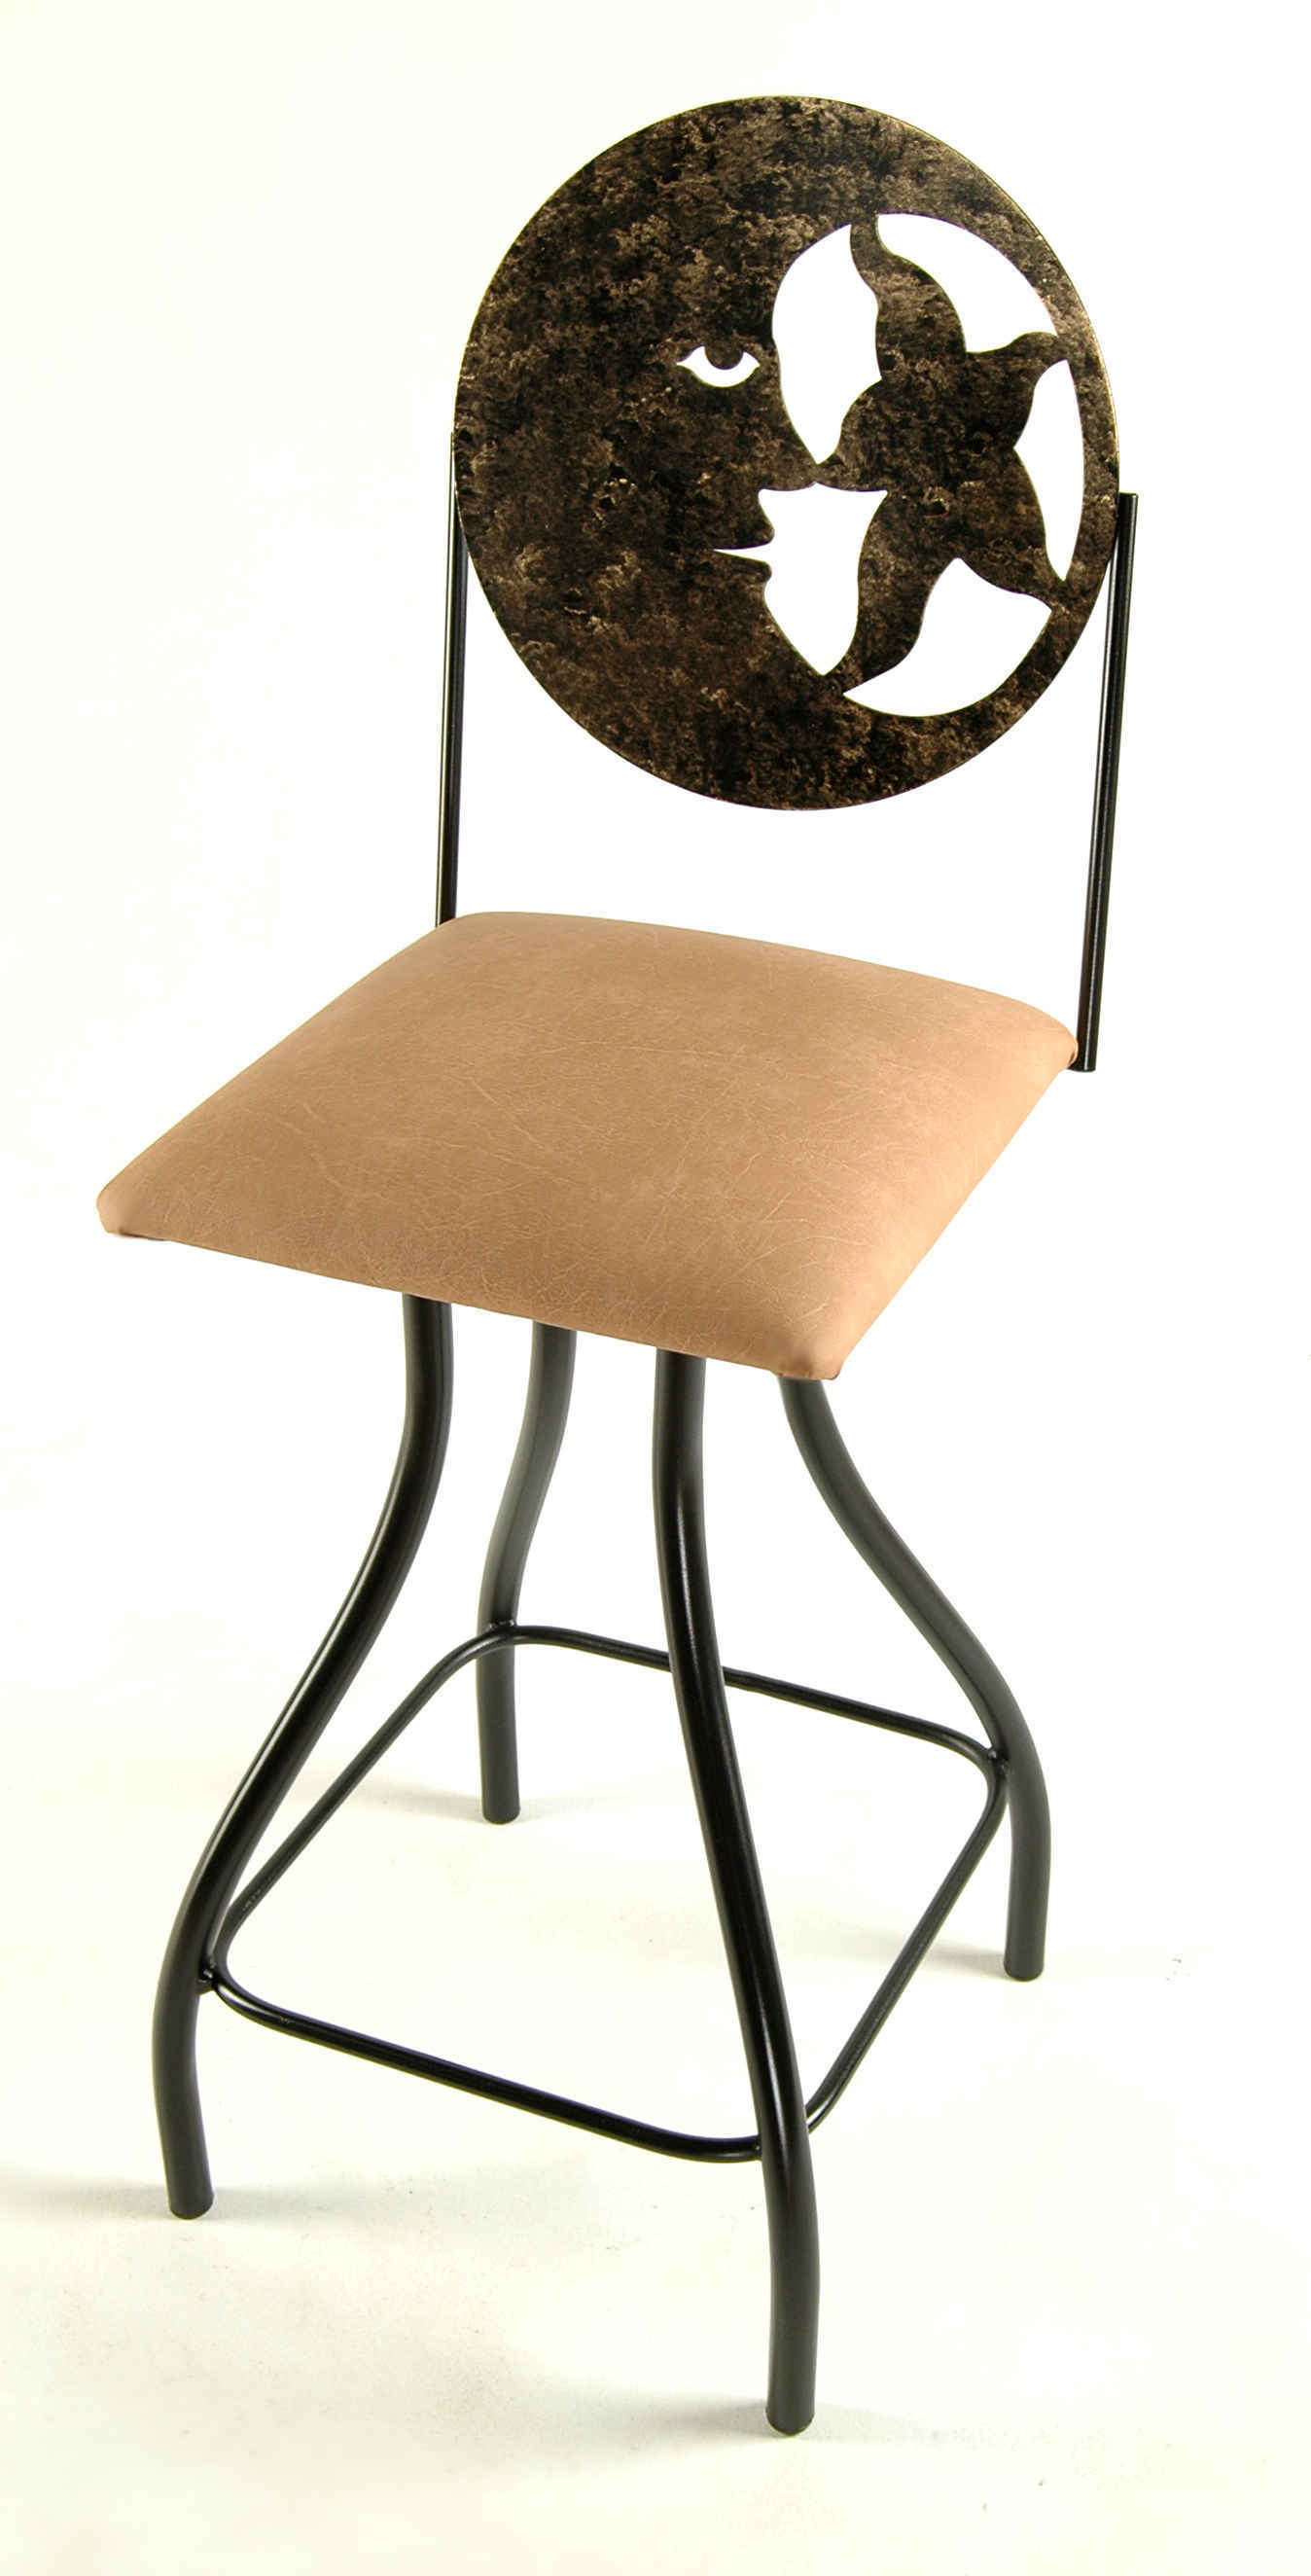 ... Moon Swivel Kitchen Counter Stool In Black Finish With Upholstered  Cushion ...